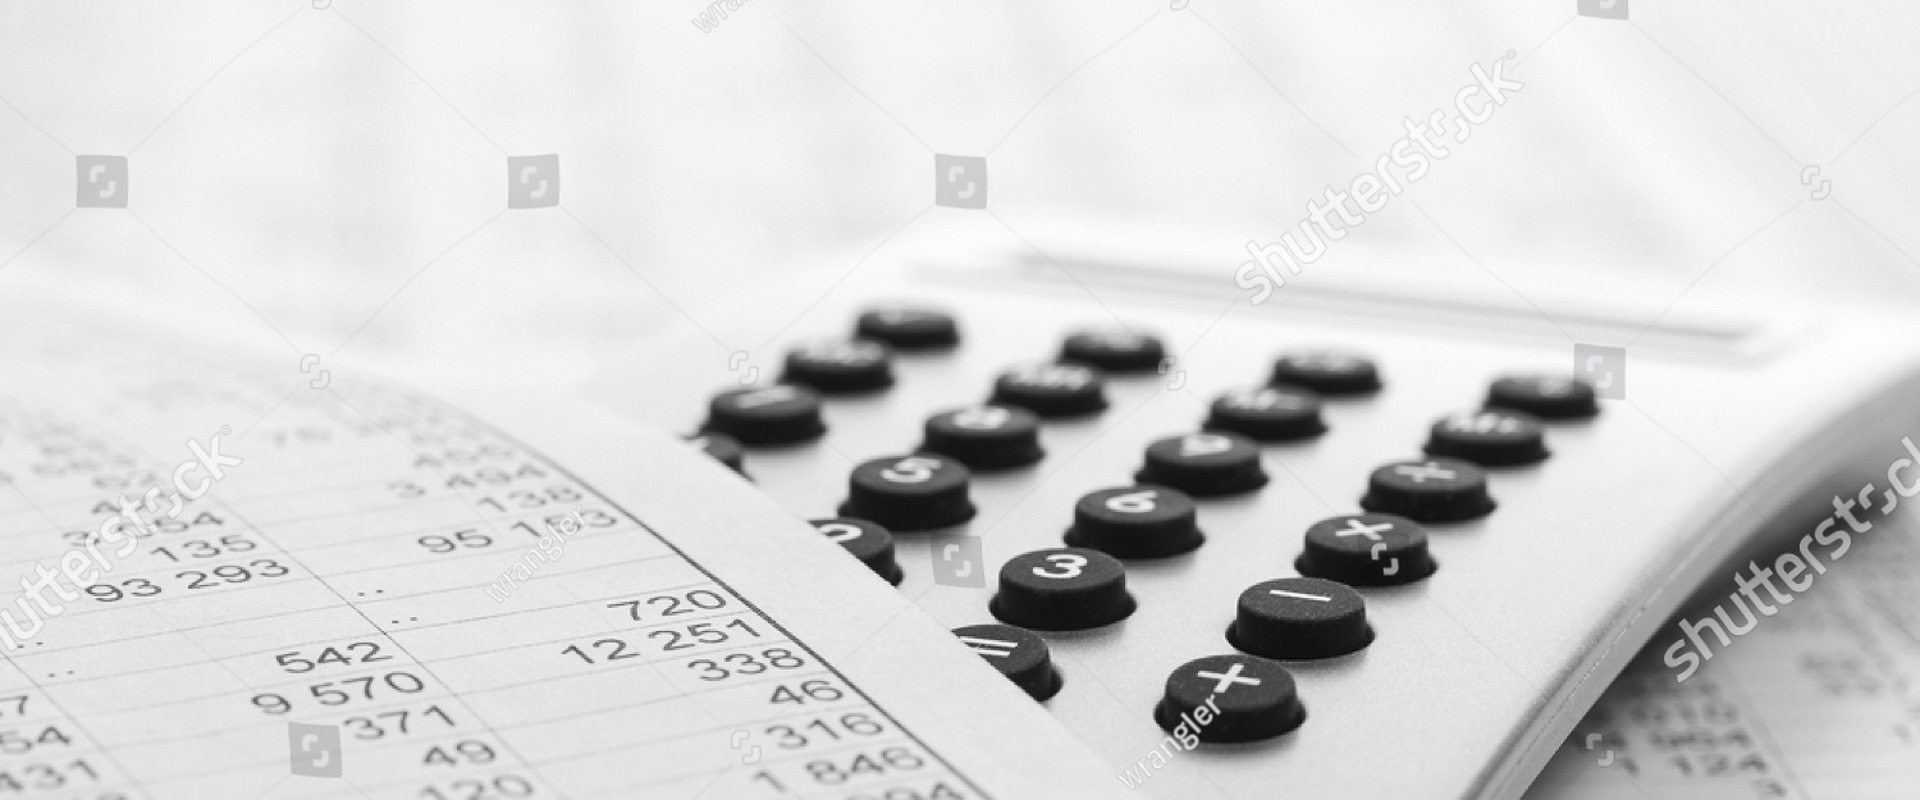 stock-photo-financial-accounting-536217793.JPG